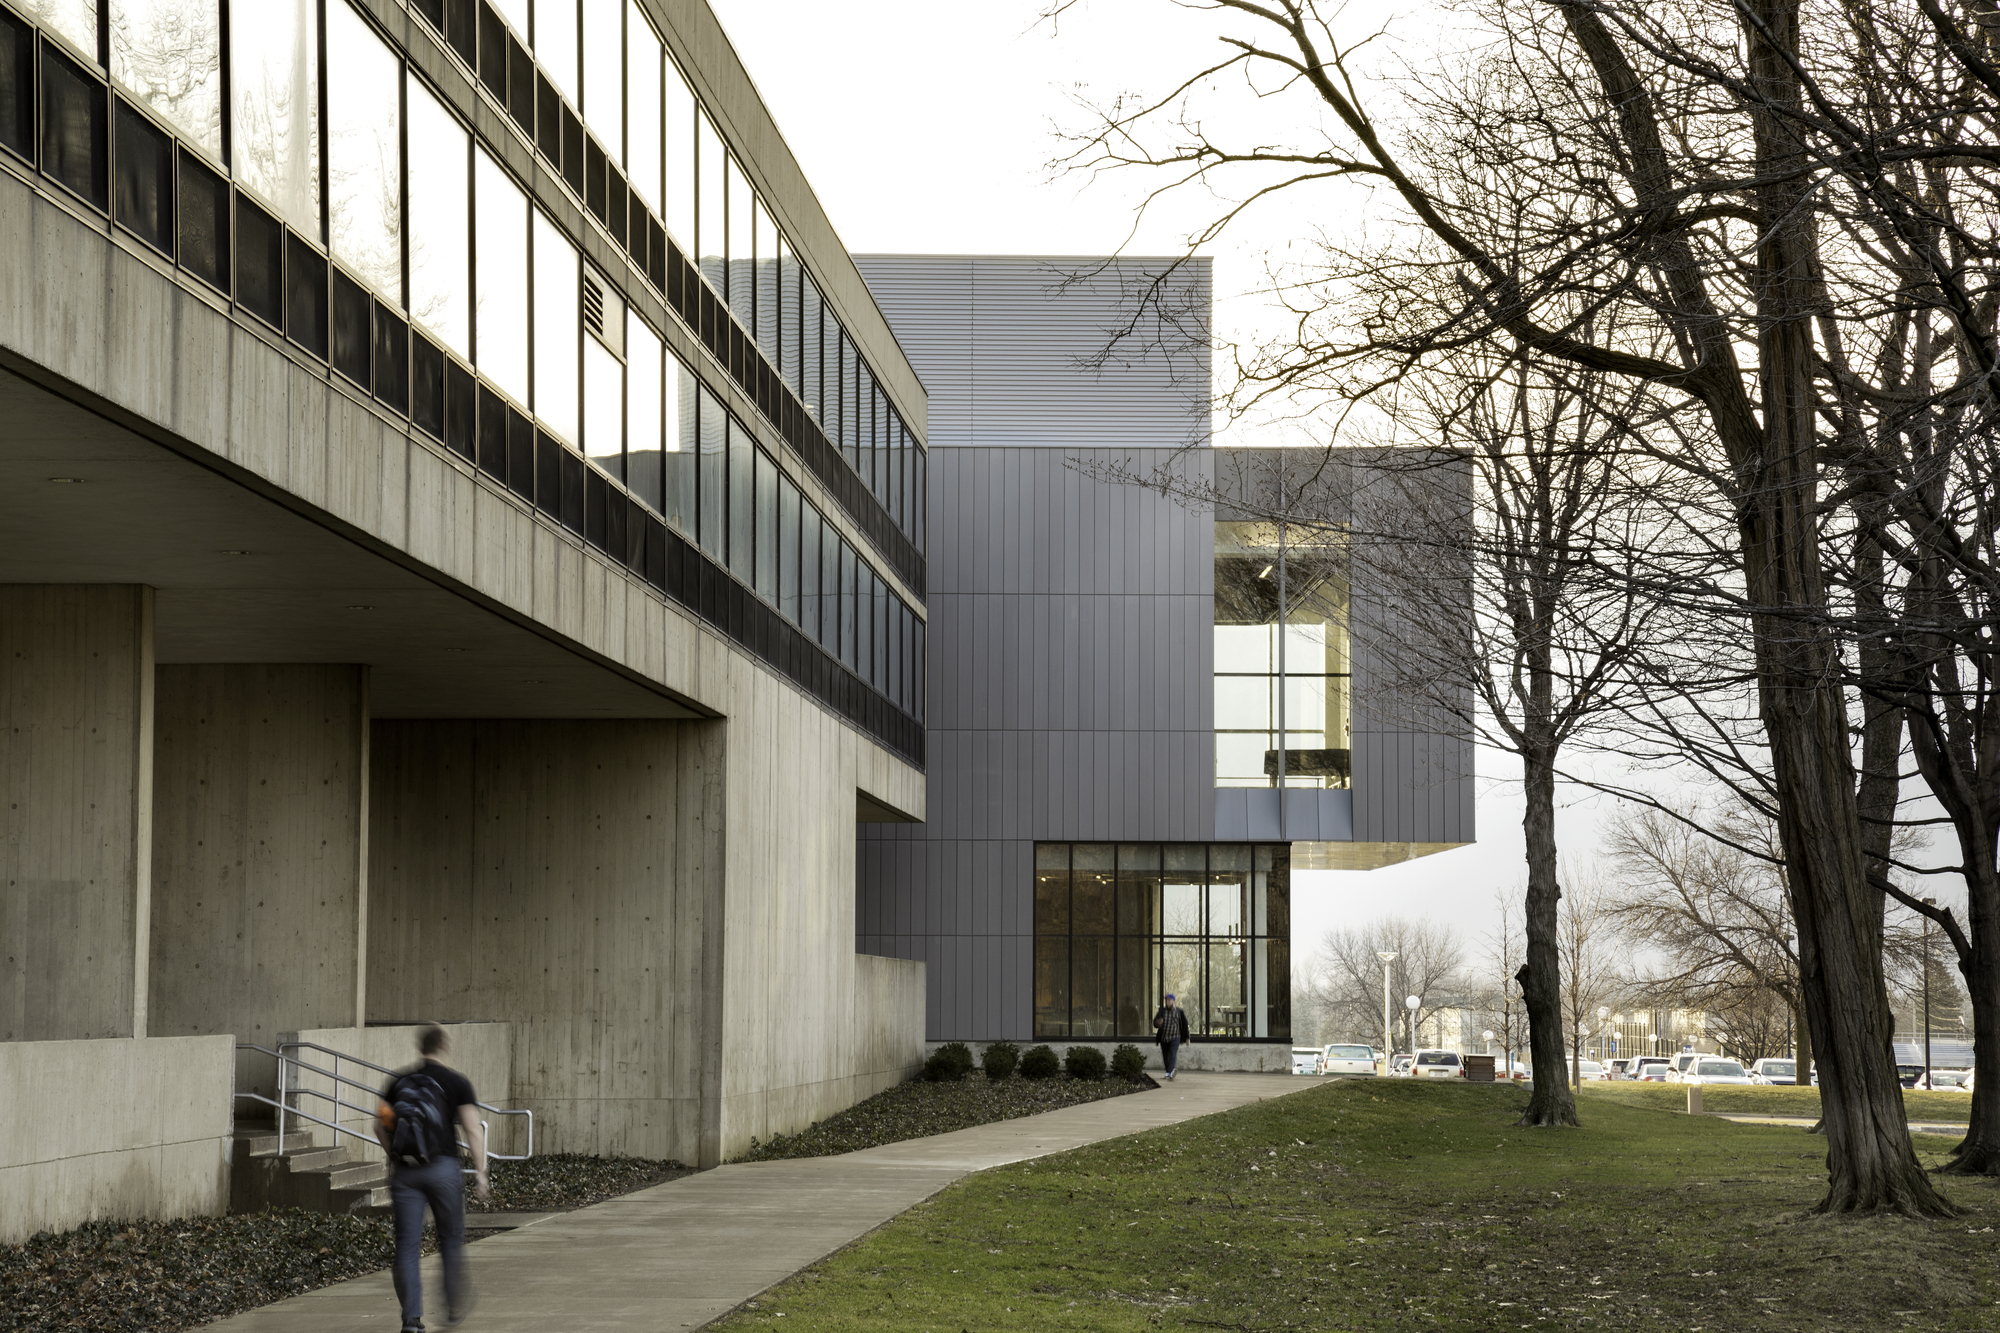 State University Of New York At Fredonia Mail: Gallery Of Rockefeller Arts Center At The State University